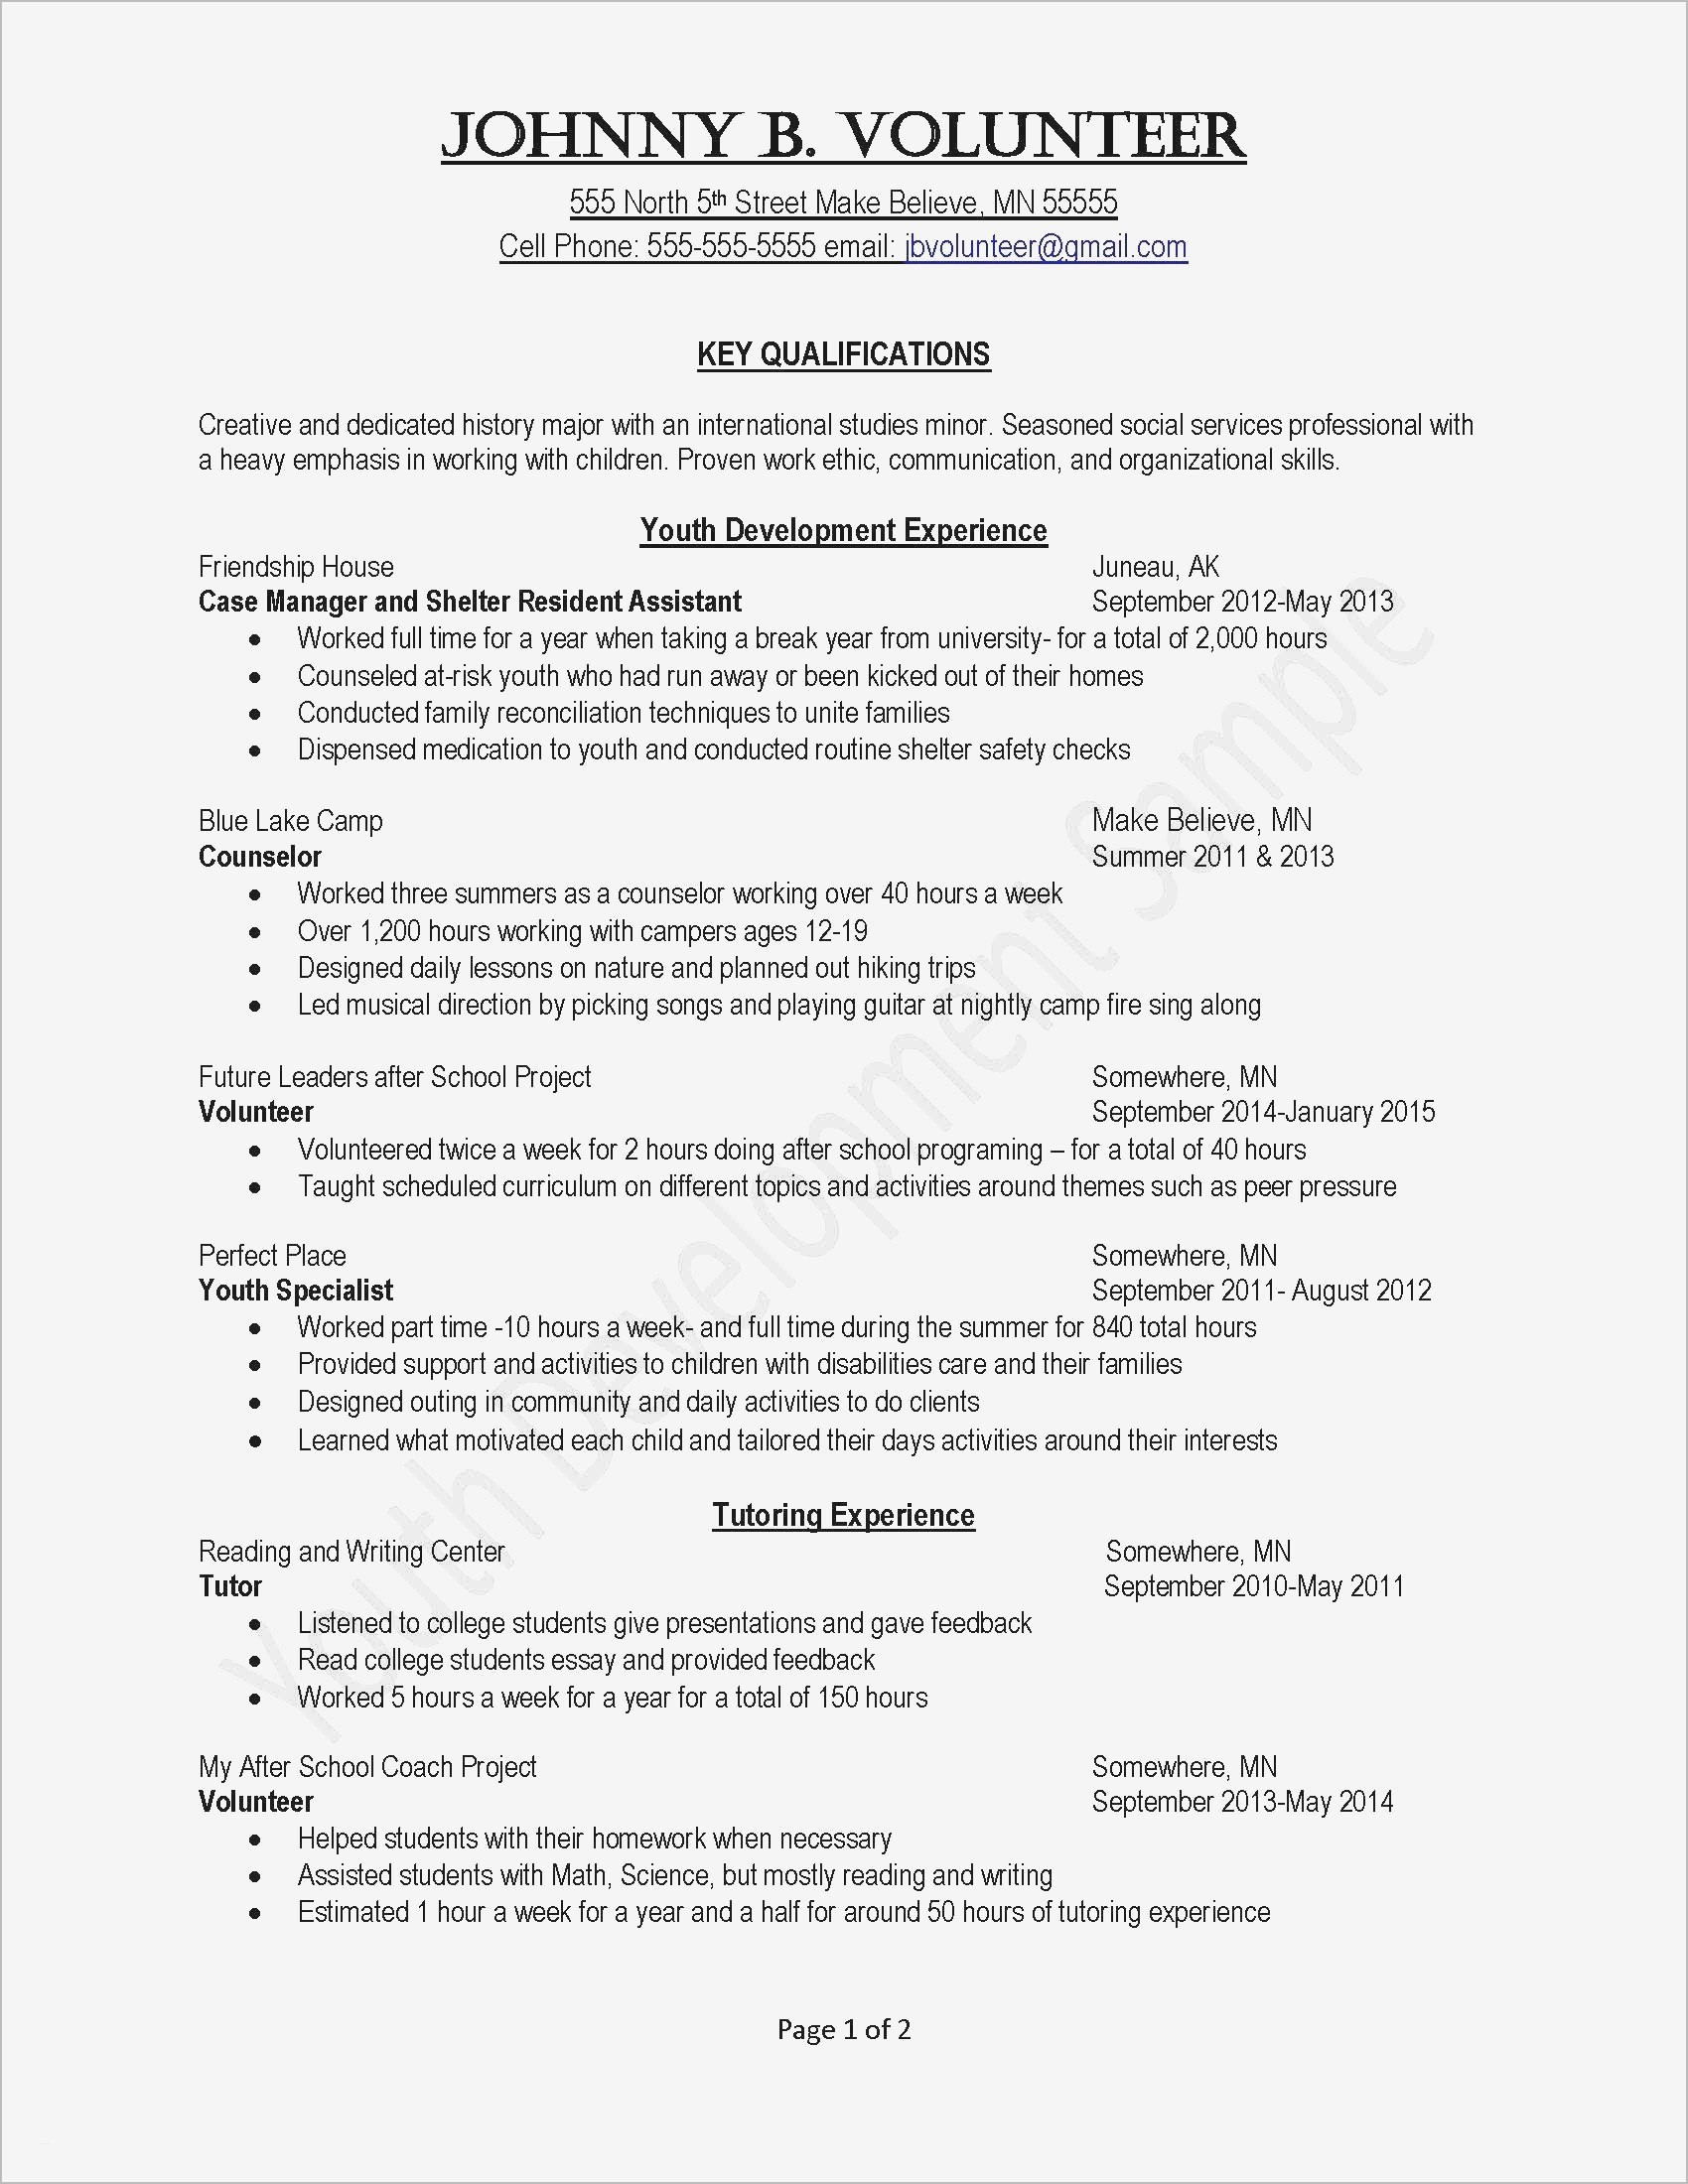 Free Template for A Cover Letter for A Resume - Free Templates for Resumes and Cover Letters Best Job Fer Letter